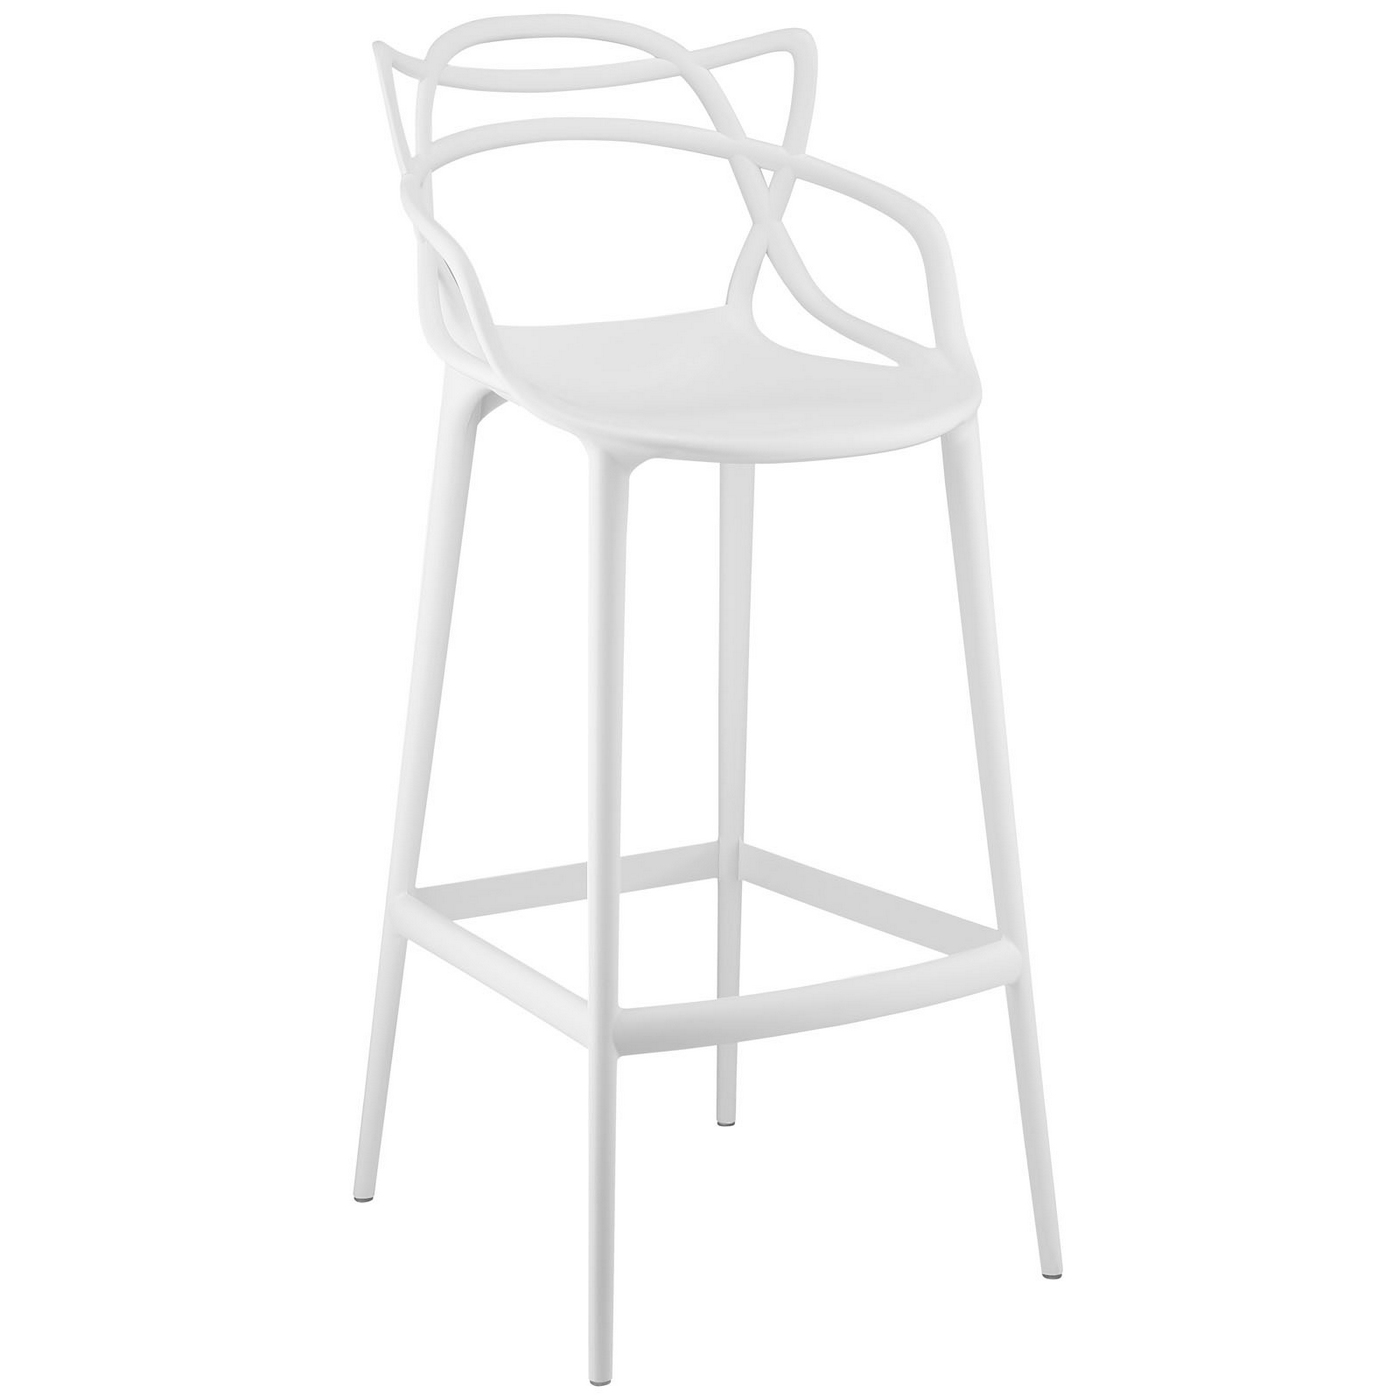 Entangled Stylish Modern Molded Plastic Bar Stool White